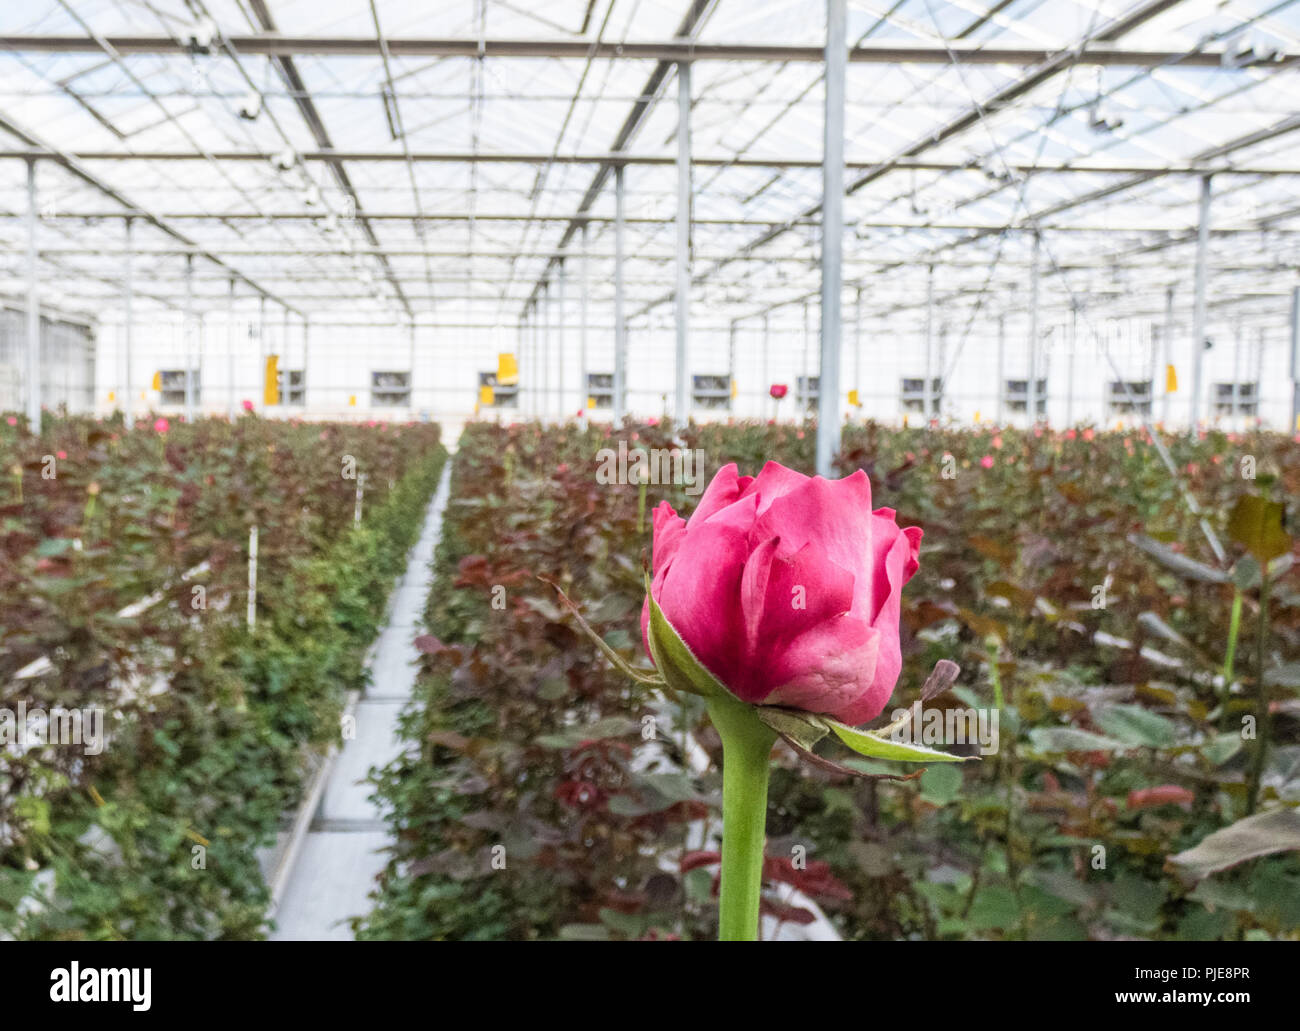 close-up of a red rose on a blurred floral background in a greenhouse Stock Photo